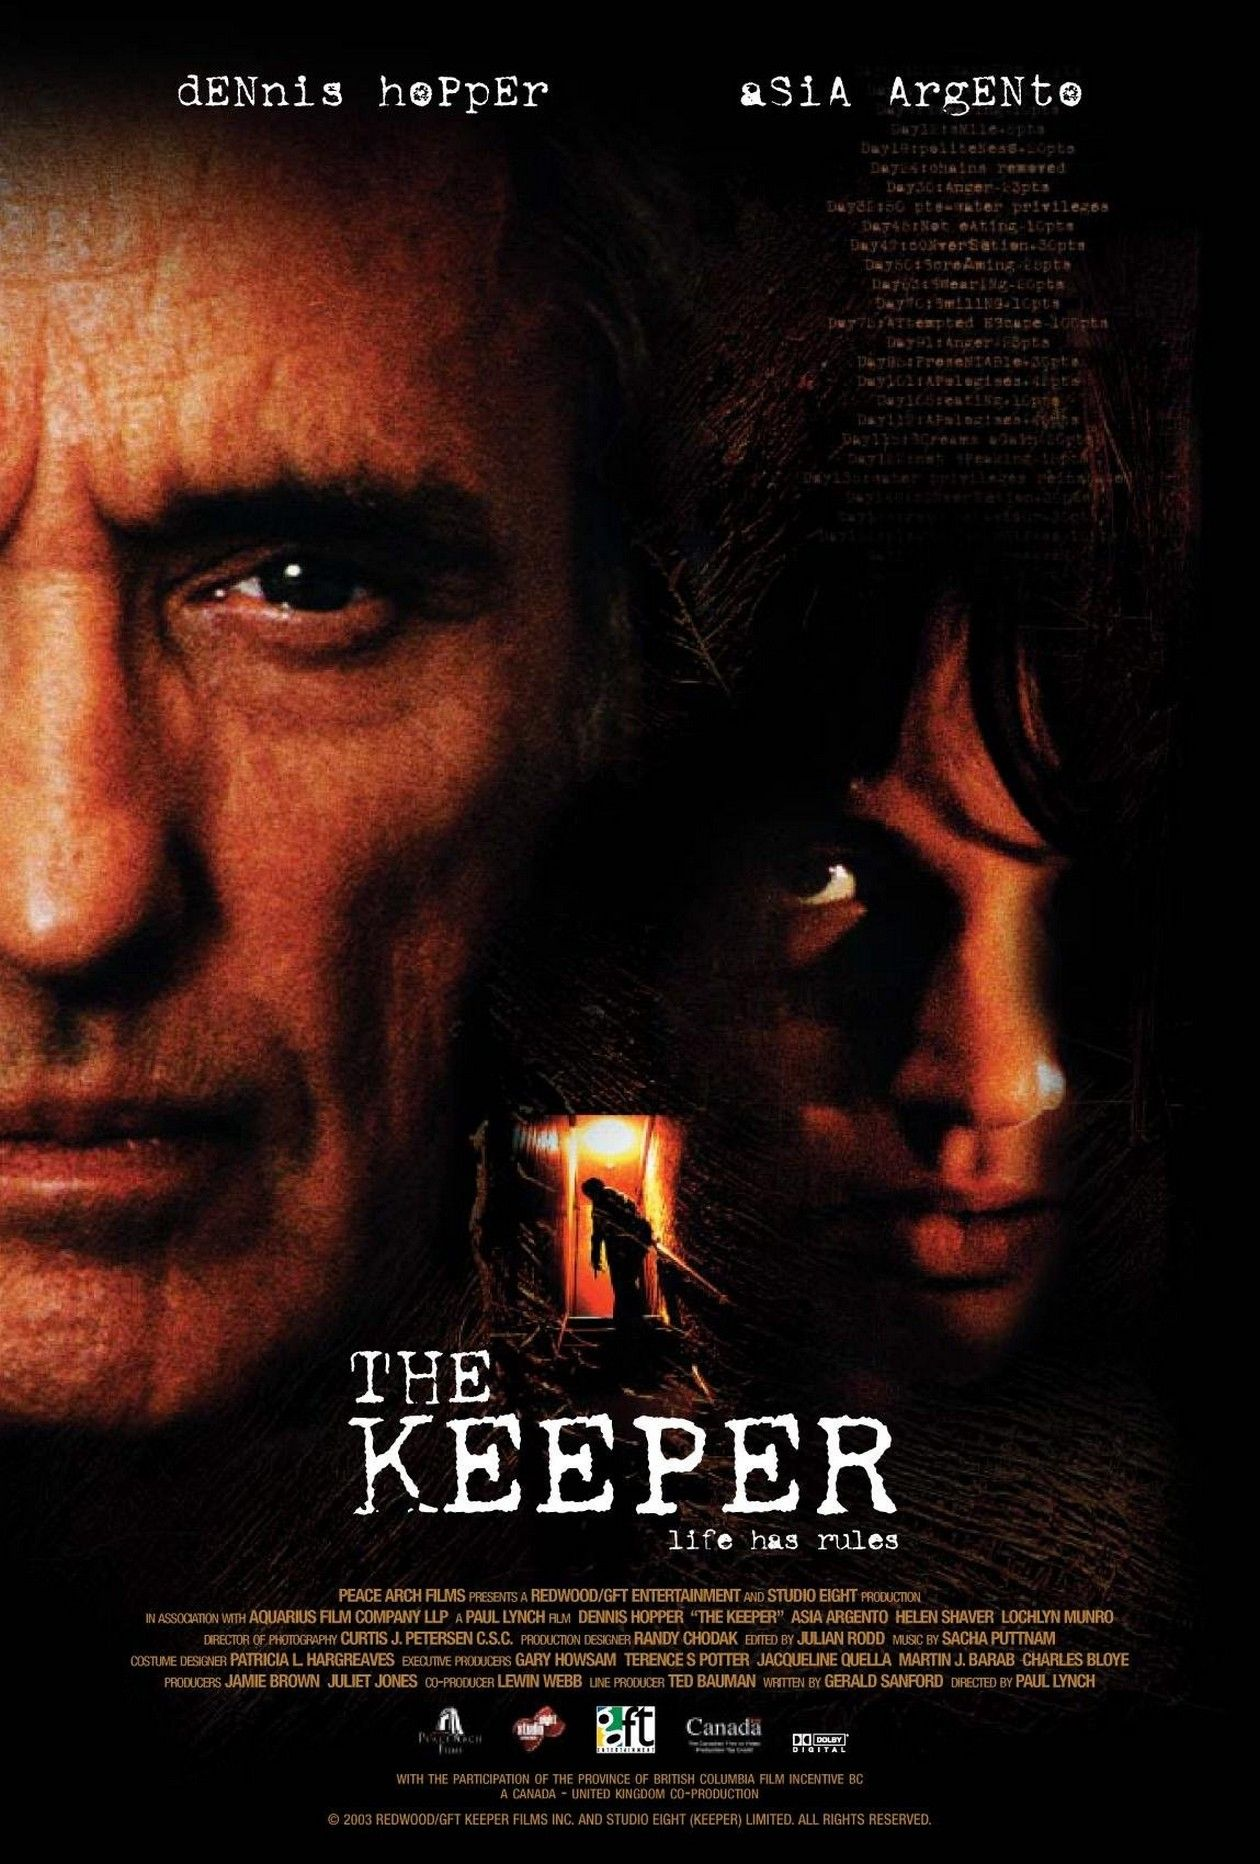 Asia Argento actress | The Keeper / Paul Lynch 2004 Movie Poster Affiche film